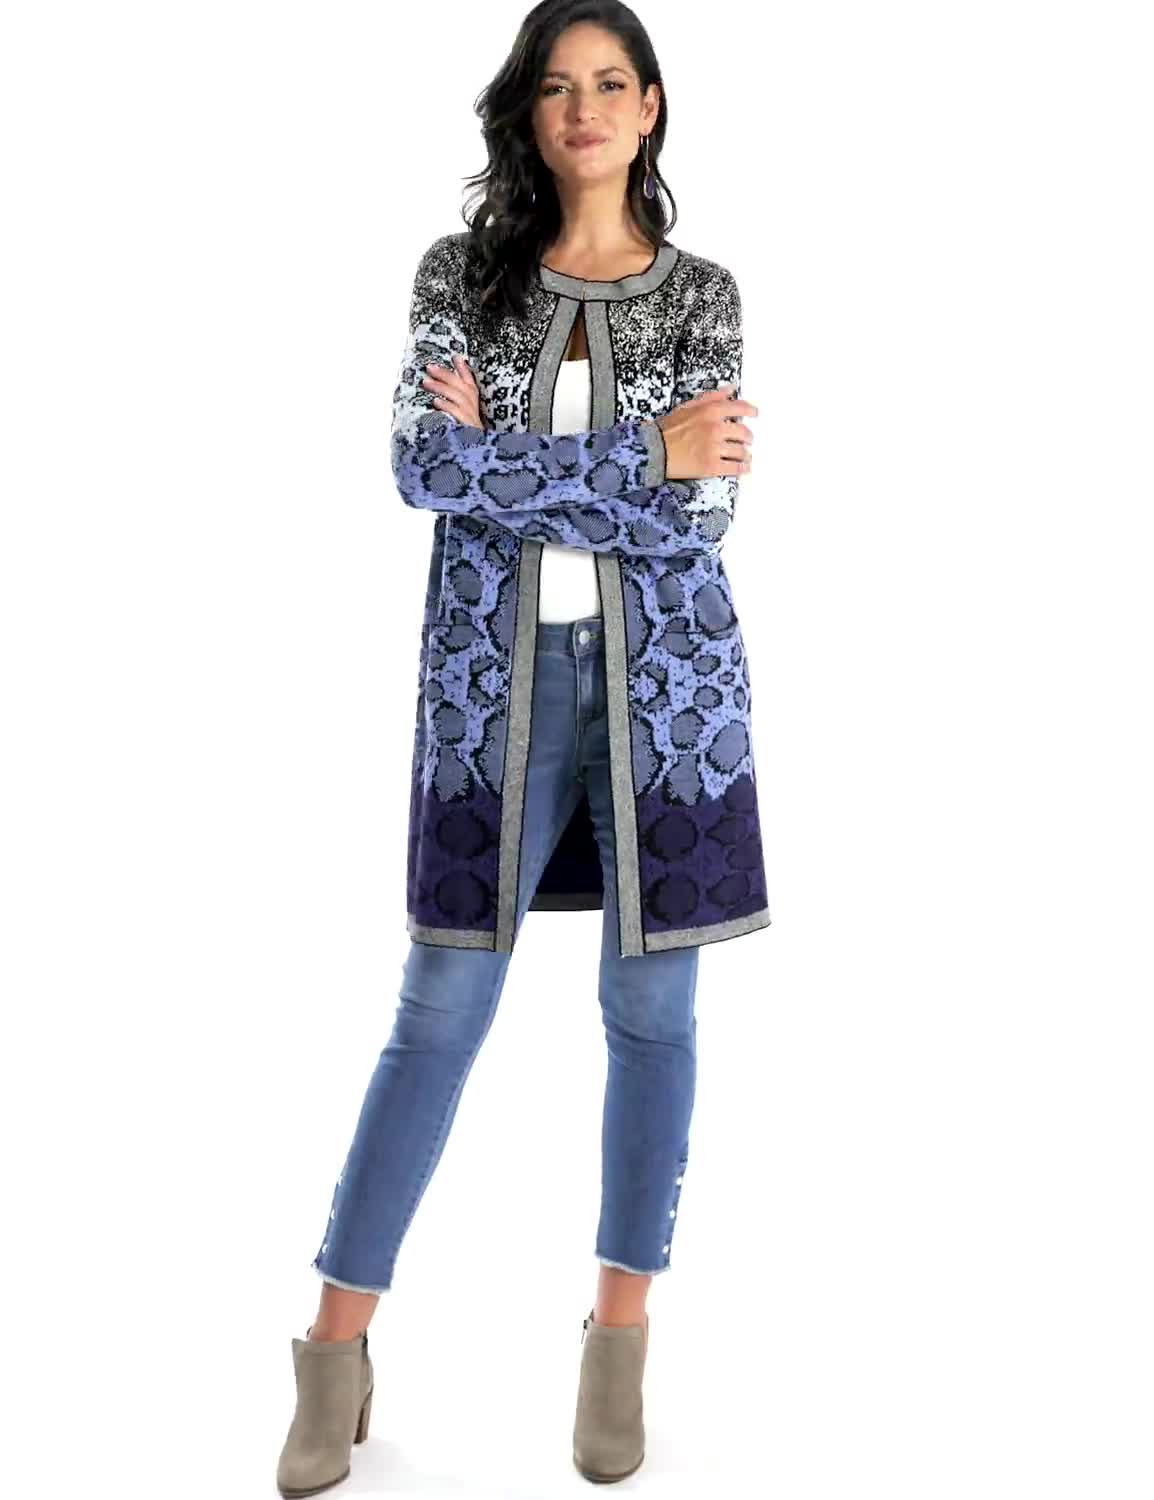 Roz & Ali Ombre Animal Duster Sweater - Misses - Video